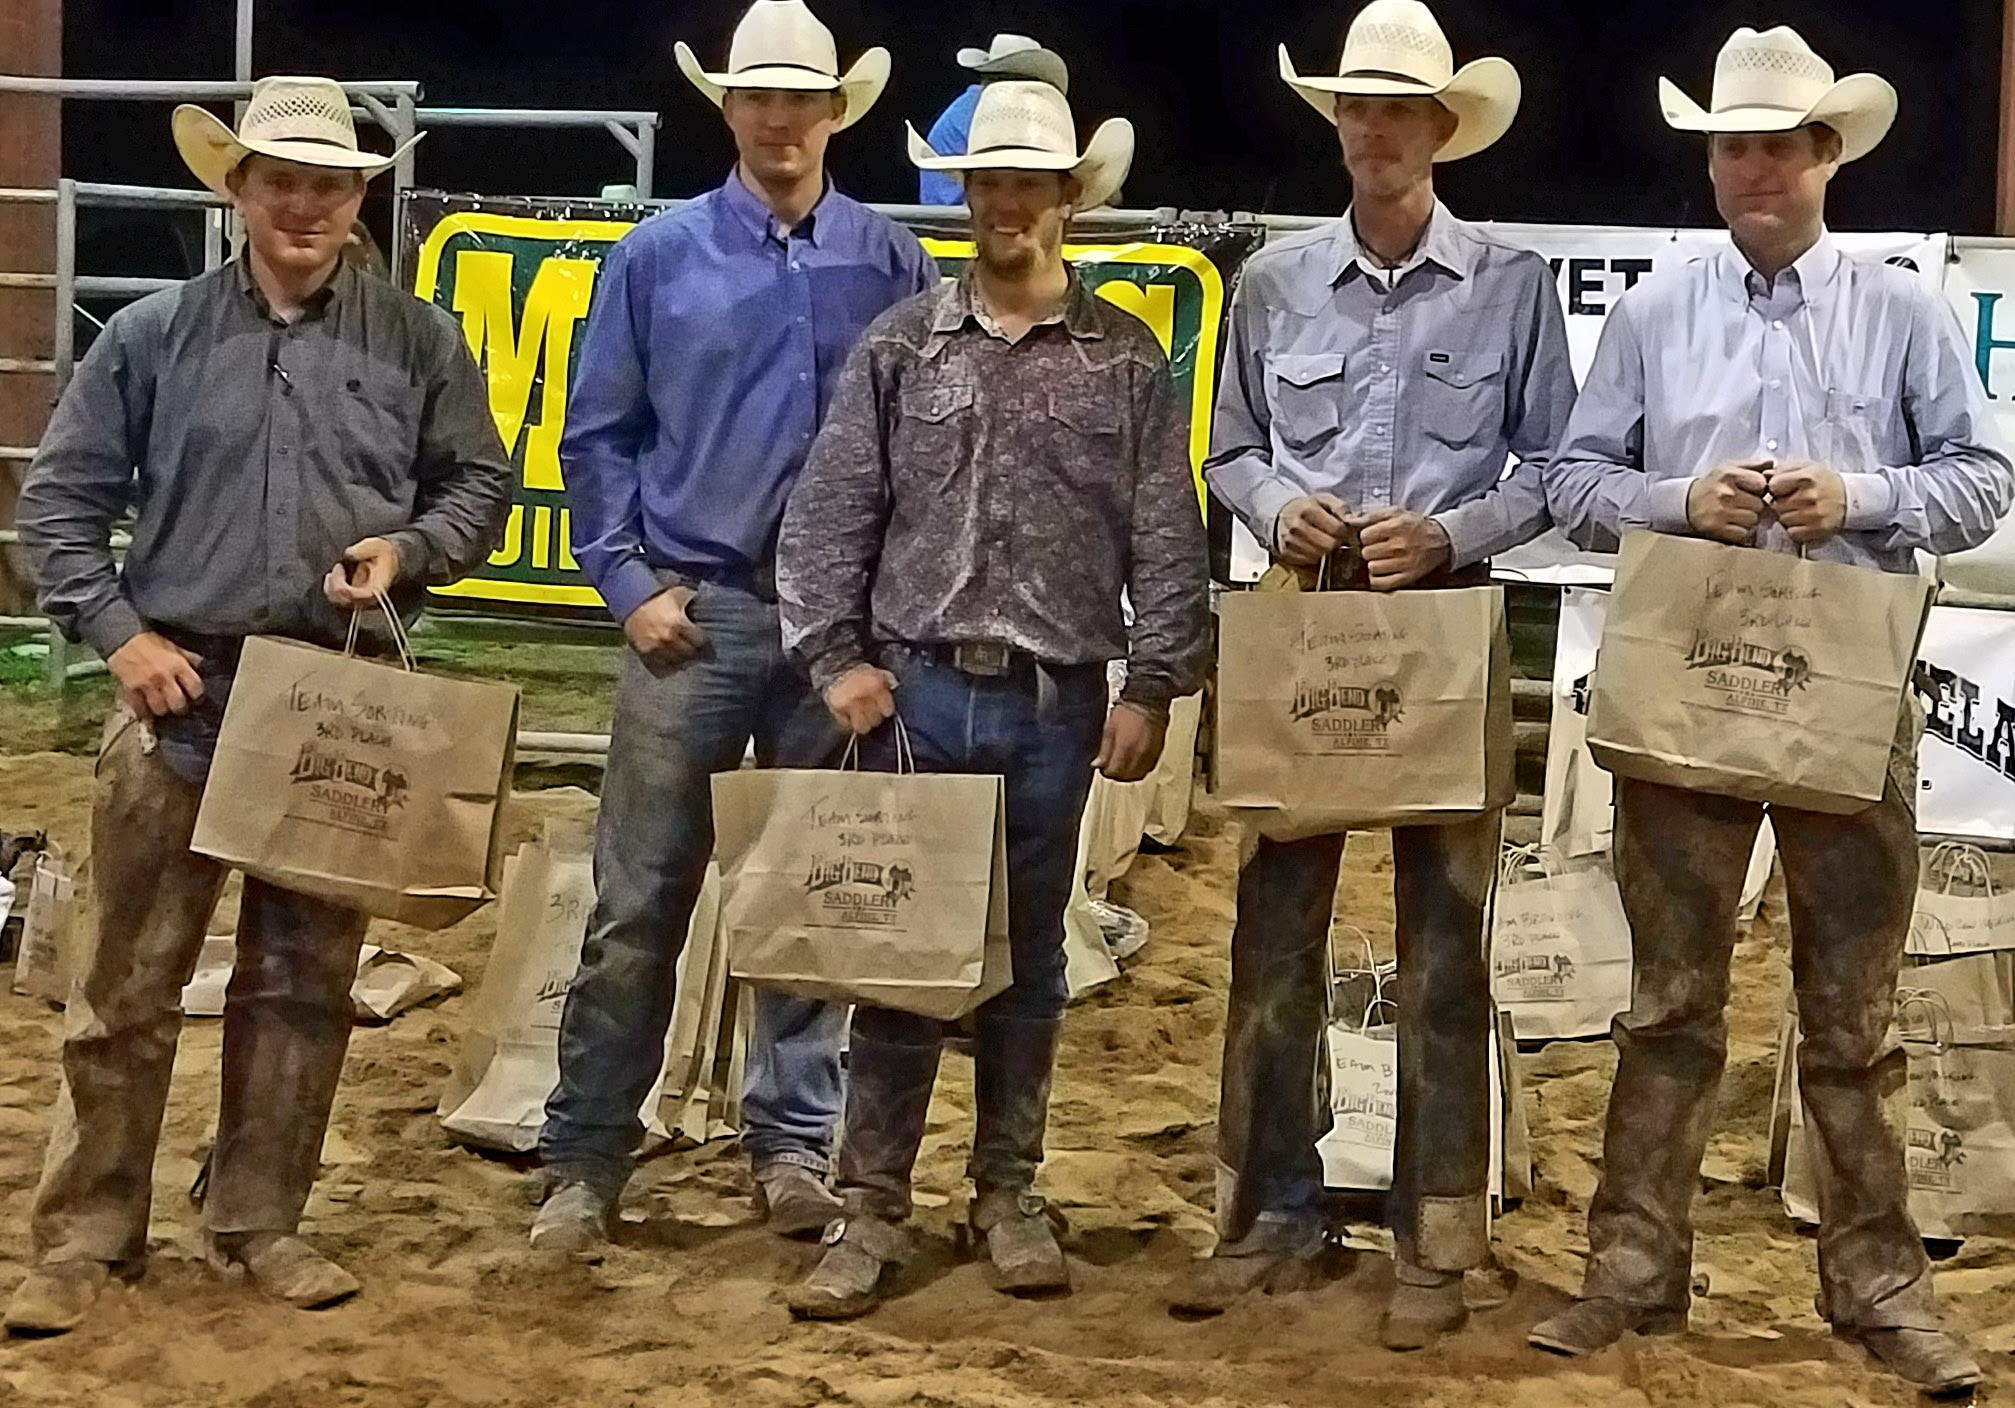 Angell Ranch - Third Place Ranch Team - 2017 Big Bend of Texas Ranch Rodeo